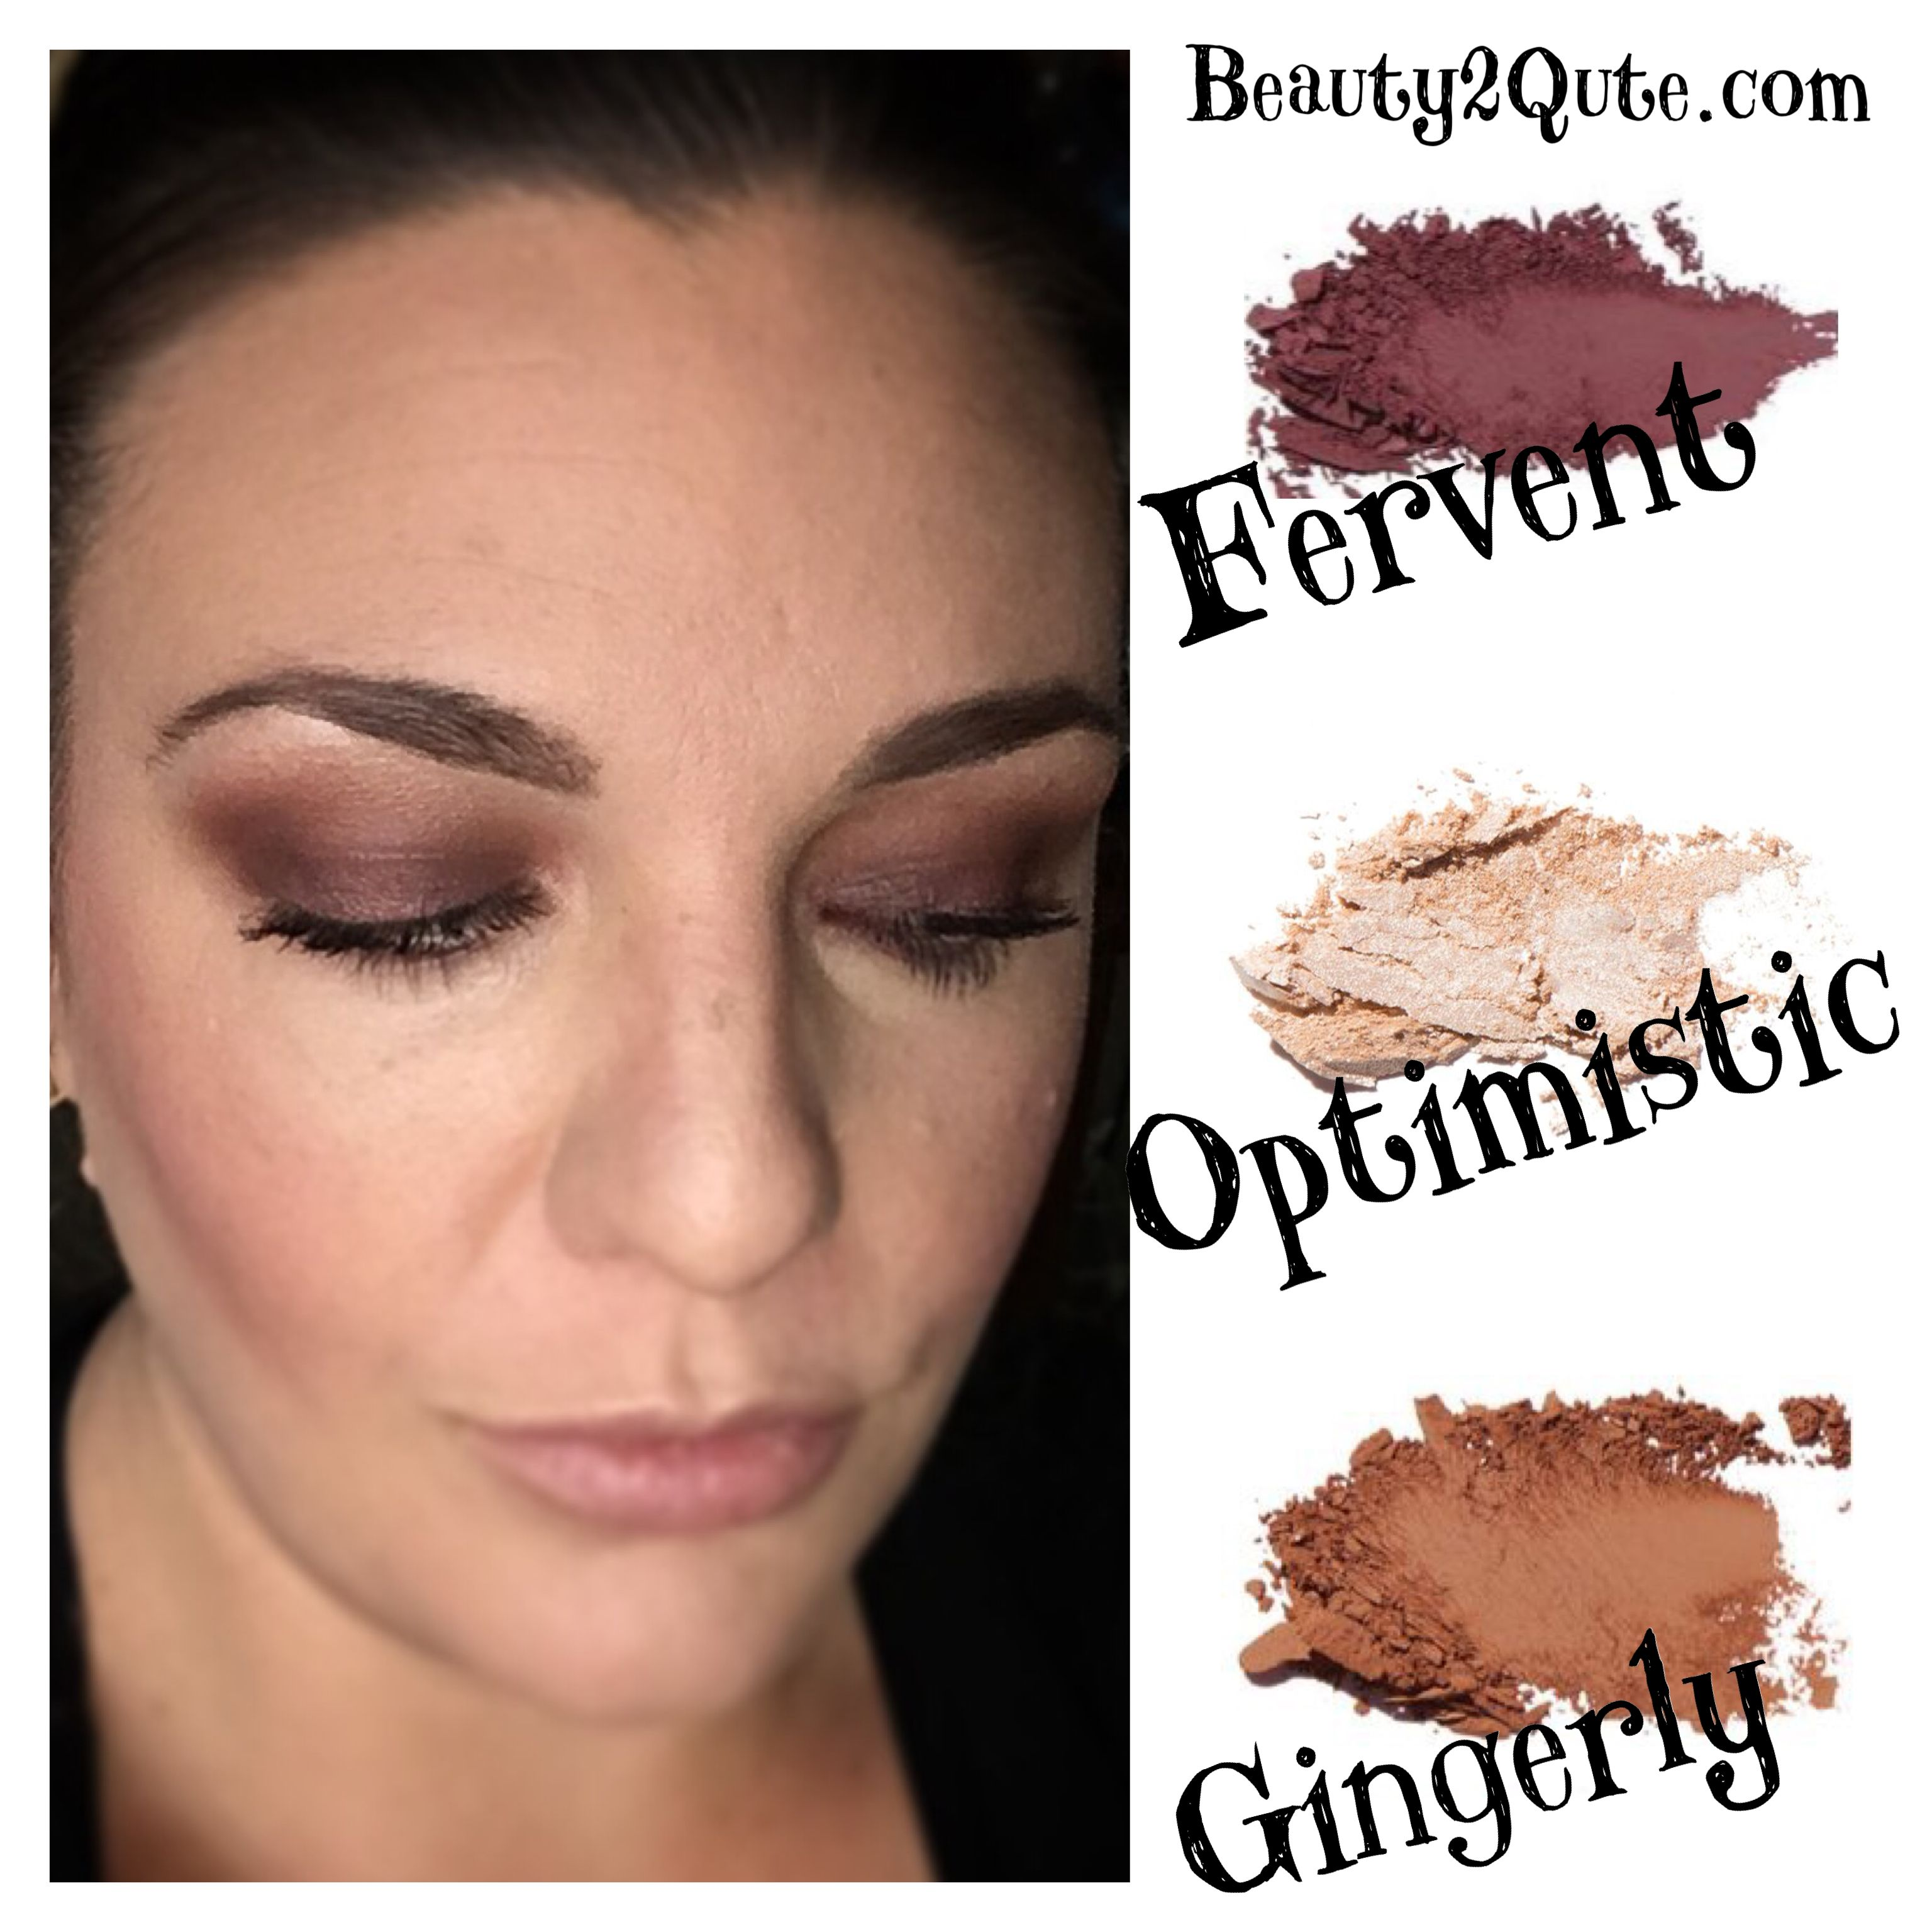 Younique pressed shadows Fervent gingerly optimistic beauty2qute.com #youniquepressedshadows